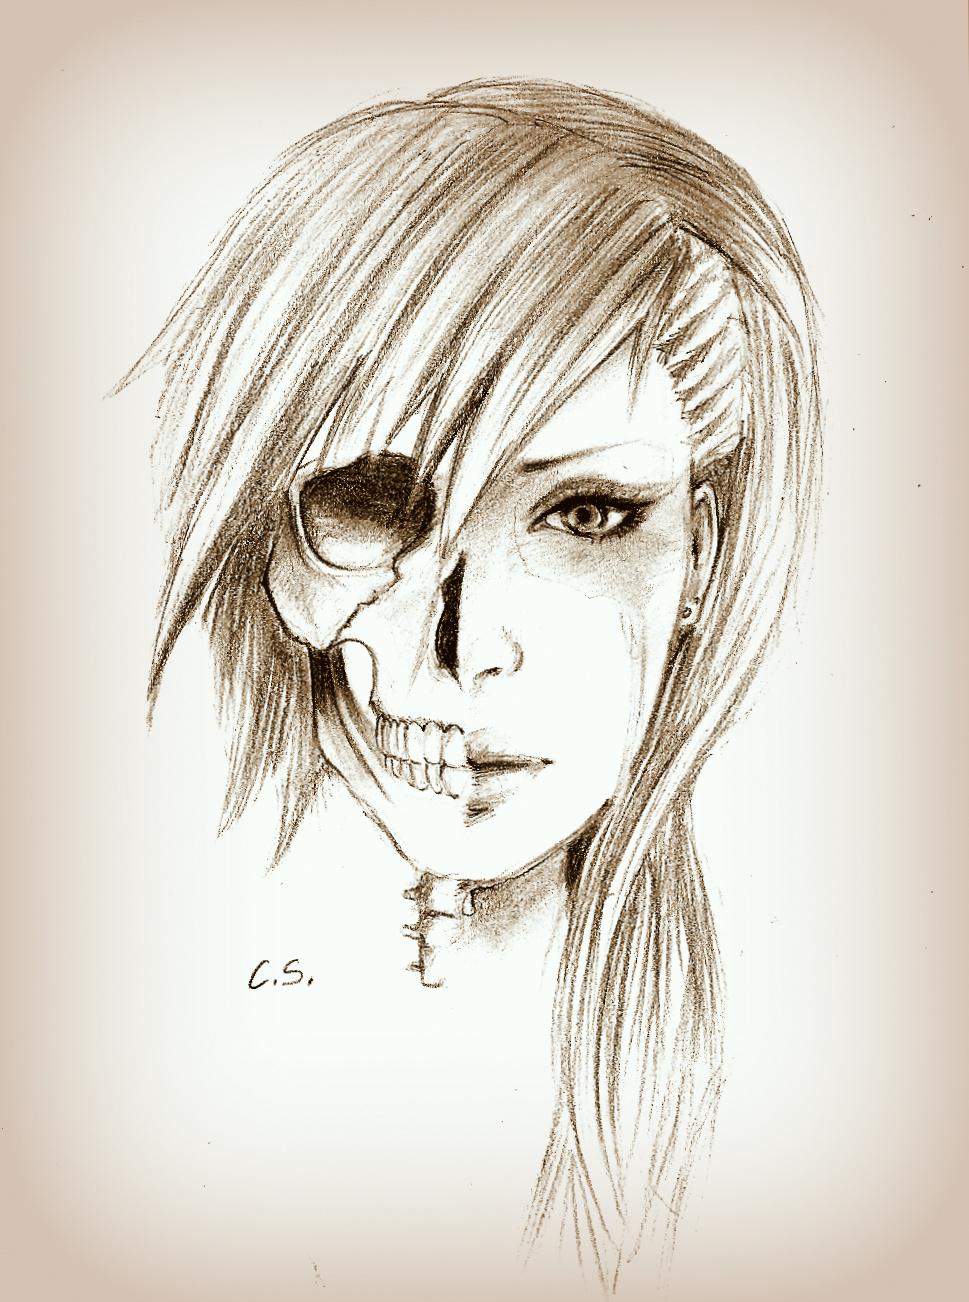 The face of a woman. One side is beautiful and full of life, the other side is a dead skeleton | drawing by cate397 on deviant art